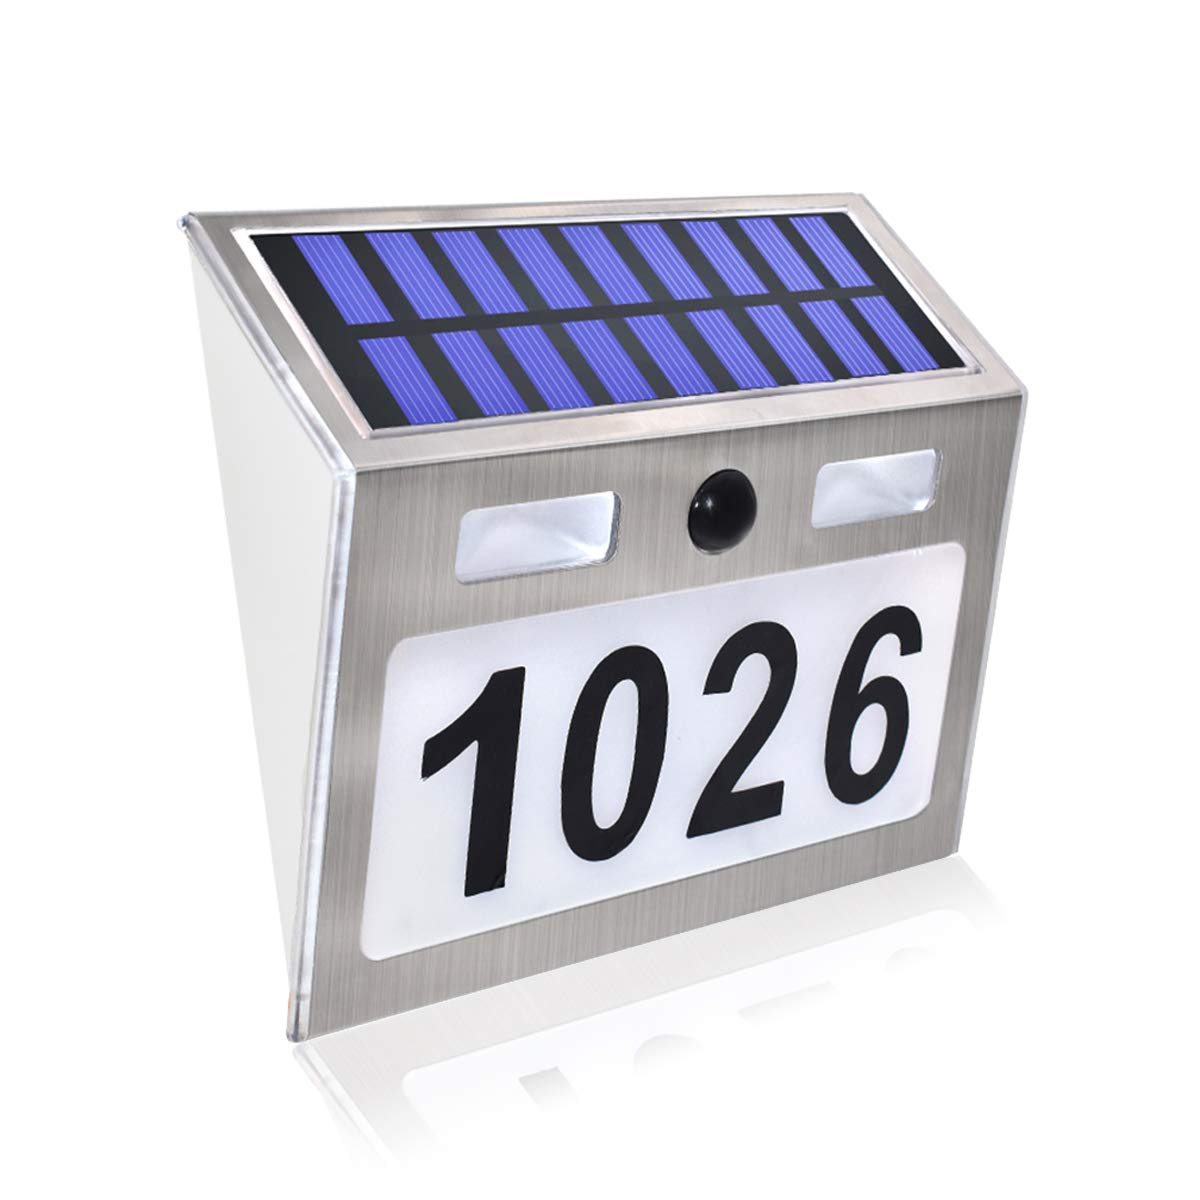 comboss Solar House Number Plaque Light with 200LM Motion Sensor LED Light Address Number for Home Garden, Customized Letter & Number